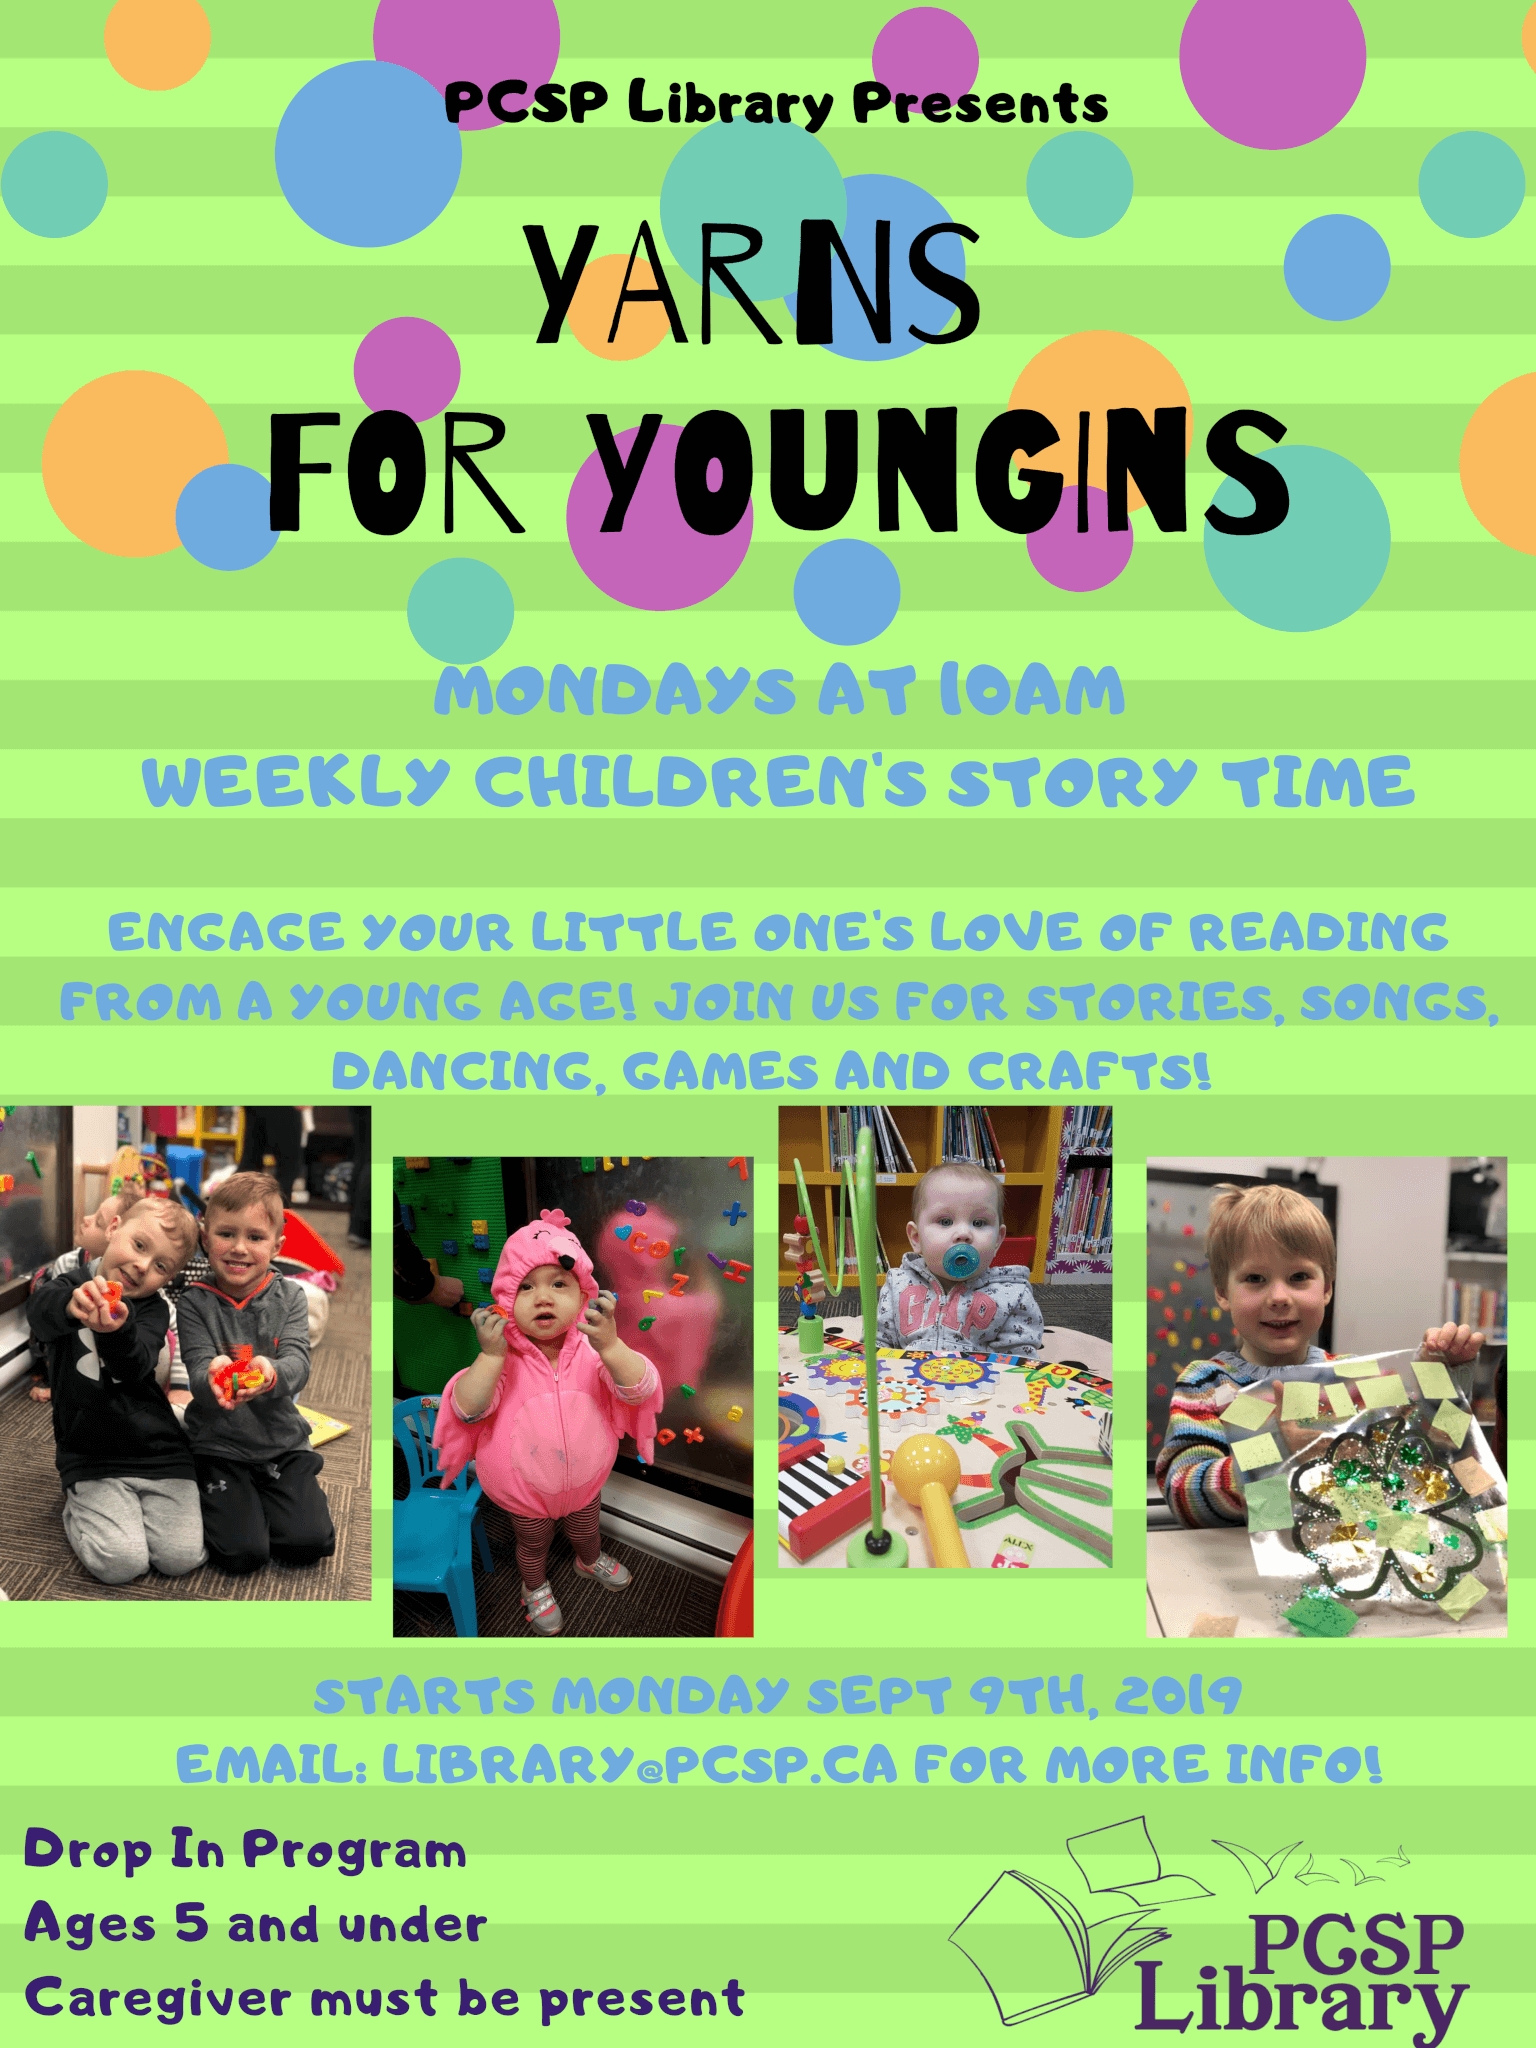 Yarns for Youngins Moved to Mondays | Town of Portugal Cove